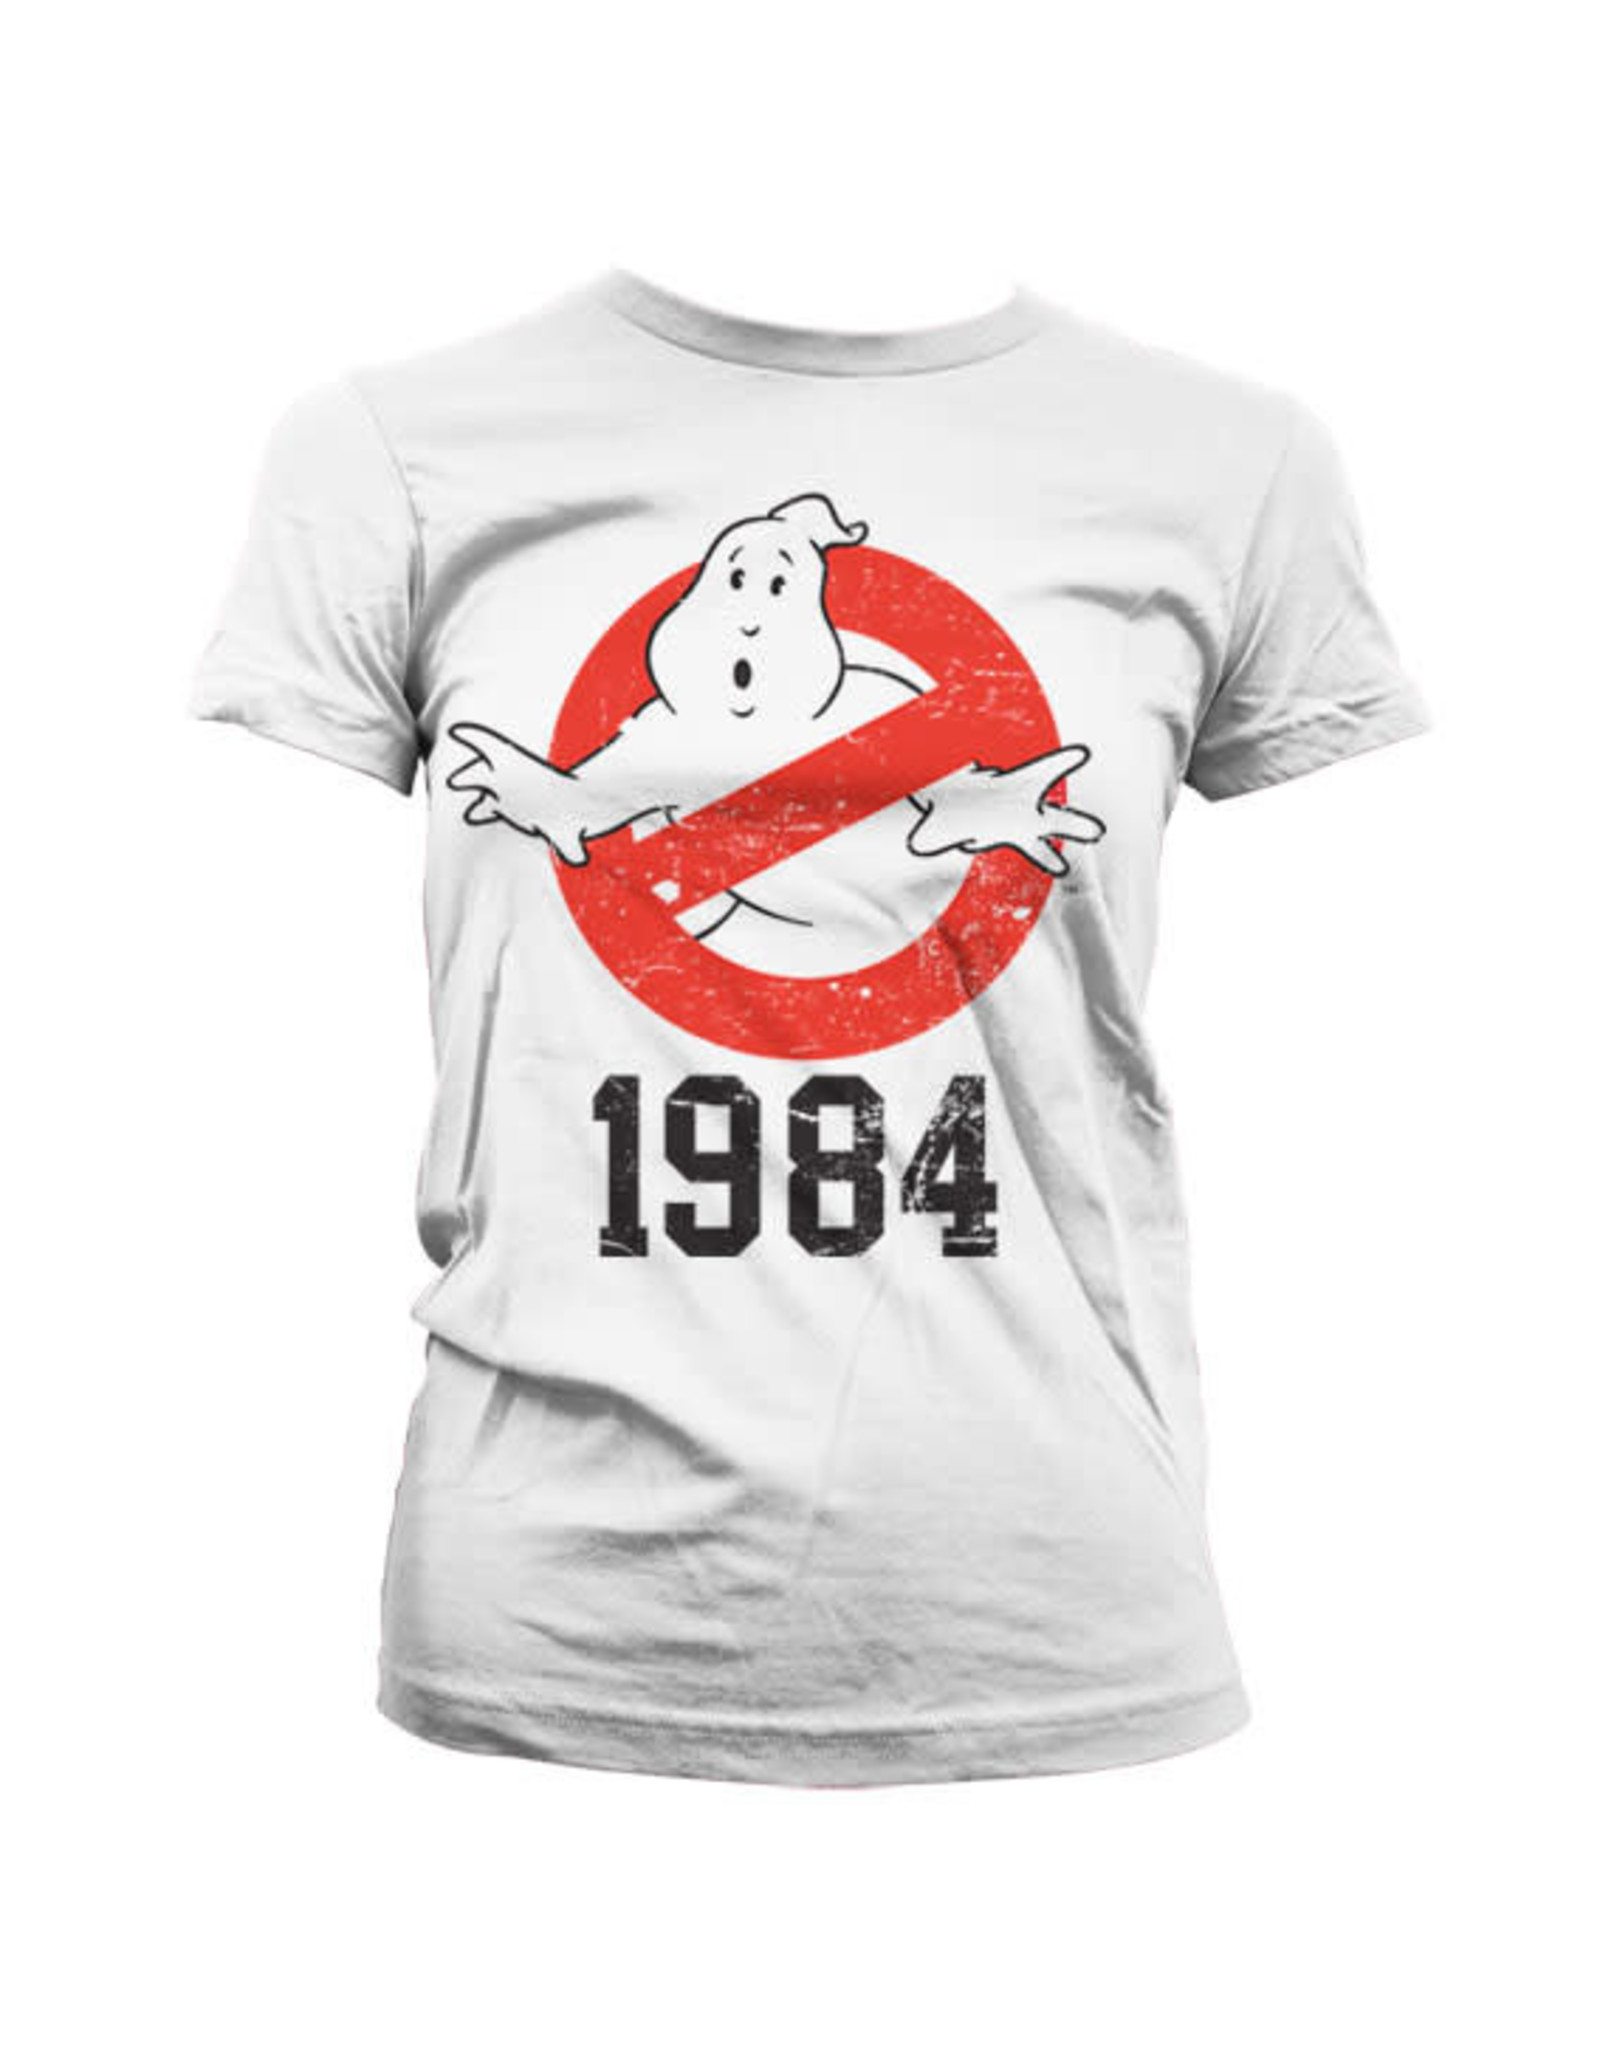 GHOSTBUSTERS - T-Shirt 1984 GIRLY - White (L)